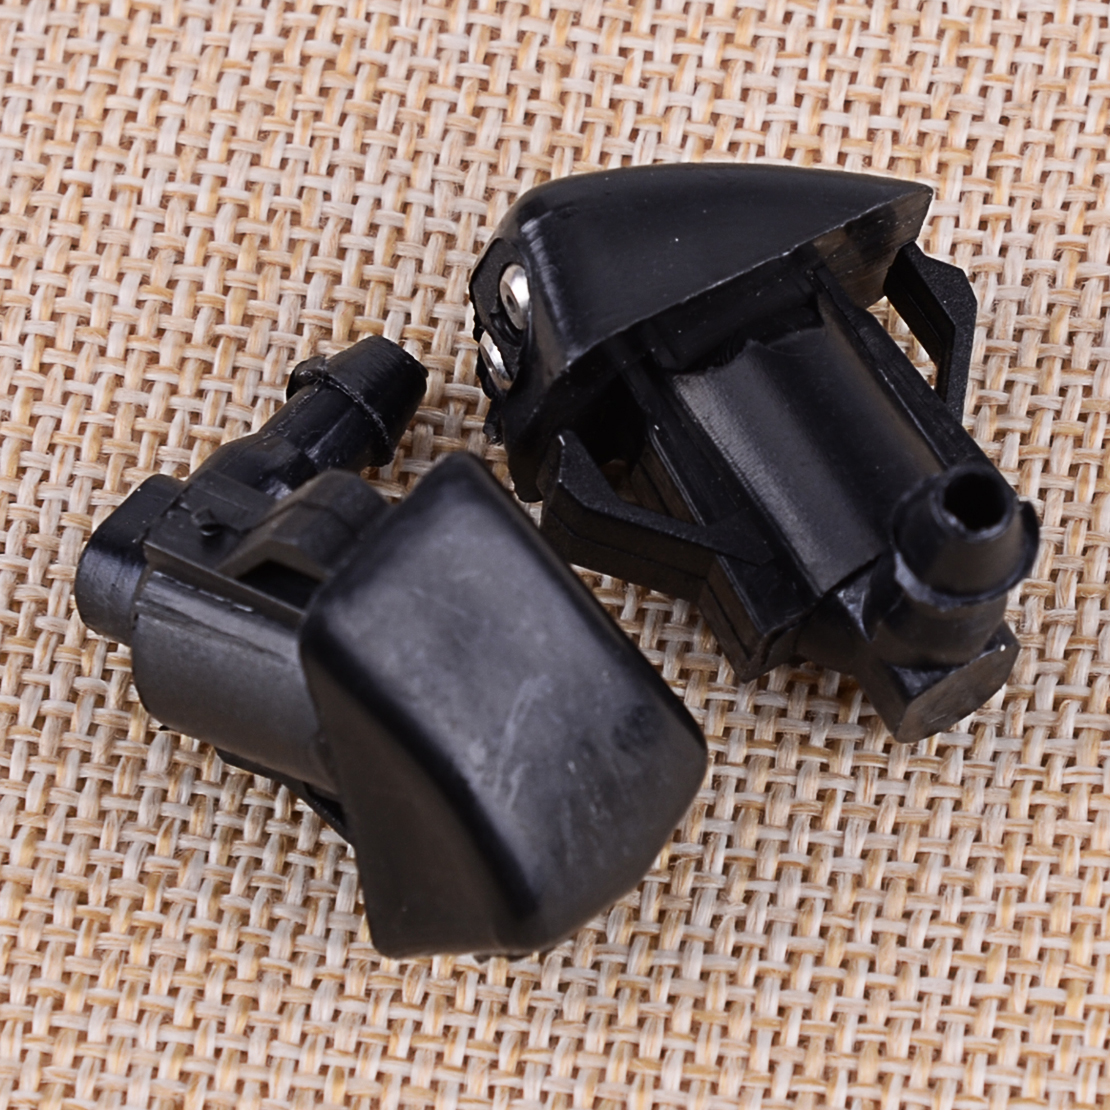 2pcs Car 2 Holes Front Windshield Wiper Water Washer Spray Jet Nozzle Spray Black Plastic Fit For <font><b>Mazda</b></font> <font><b>3</b></font> 5 6 <font><b>2006</b></font> 2007 2008 image